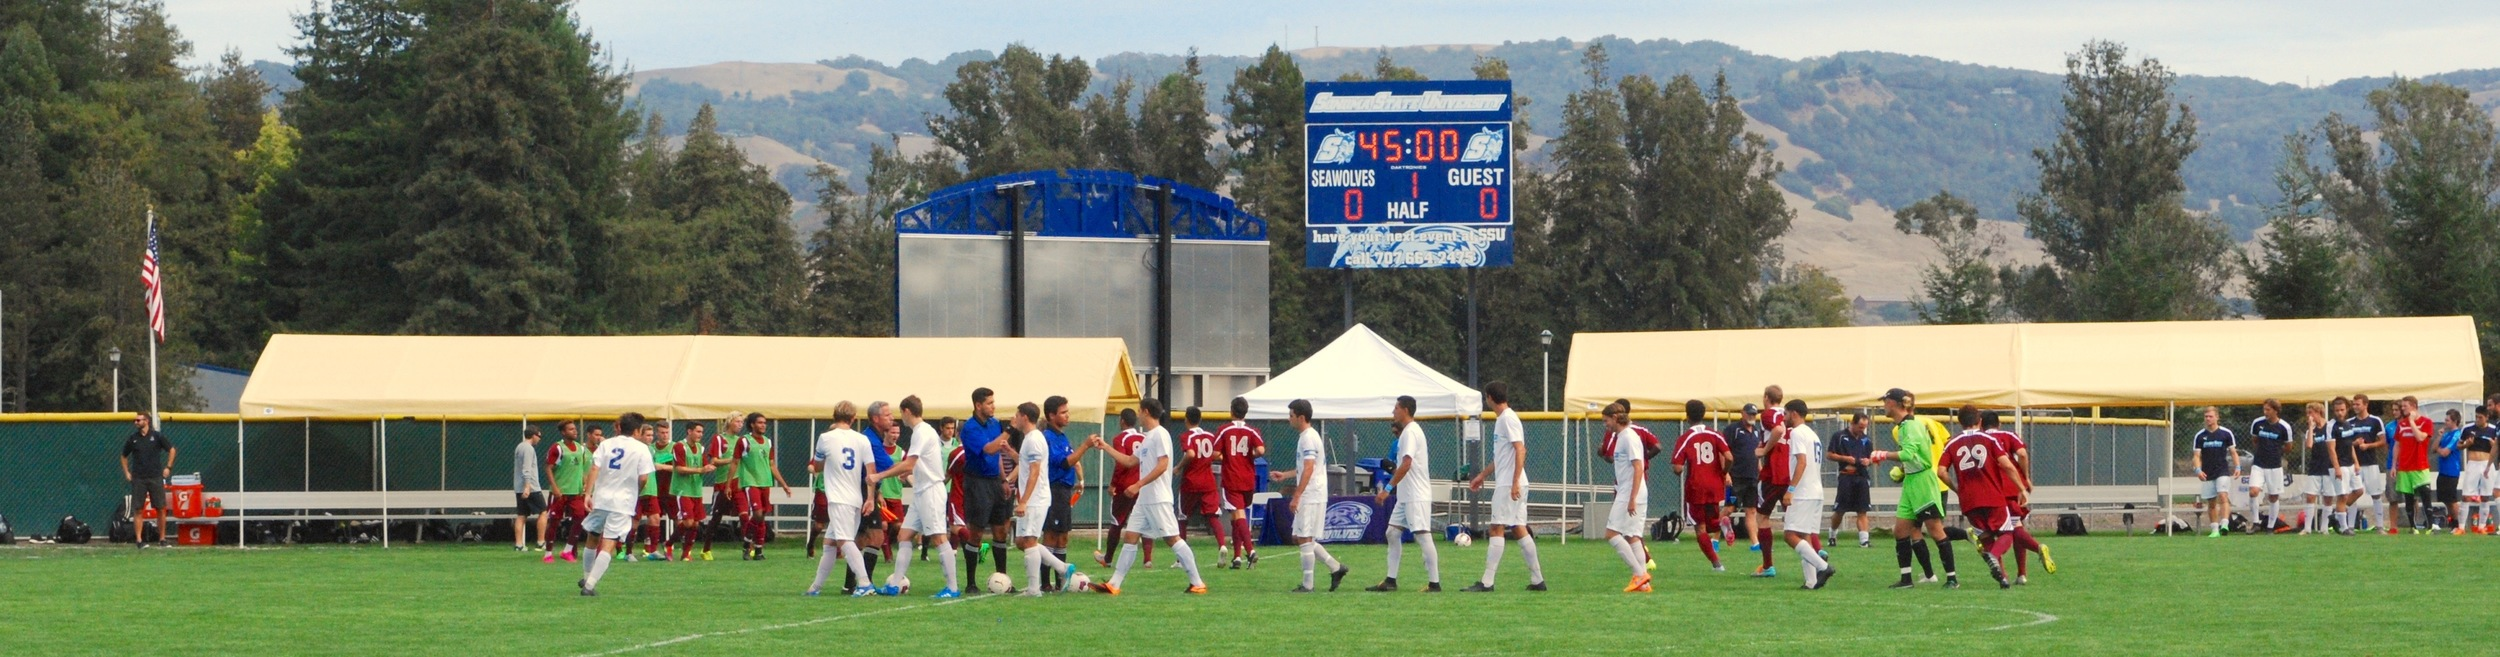 The score remained tied at the end of the first half before the Seawolves took charge and scored two goals to defeat the rival Wildcats.